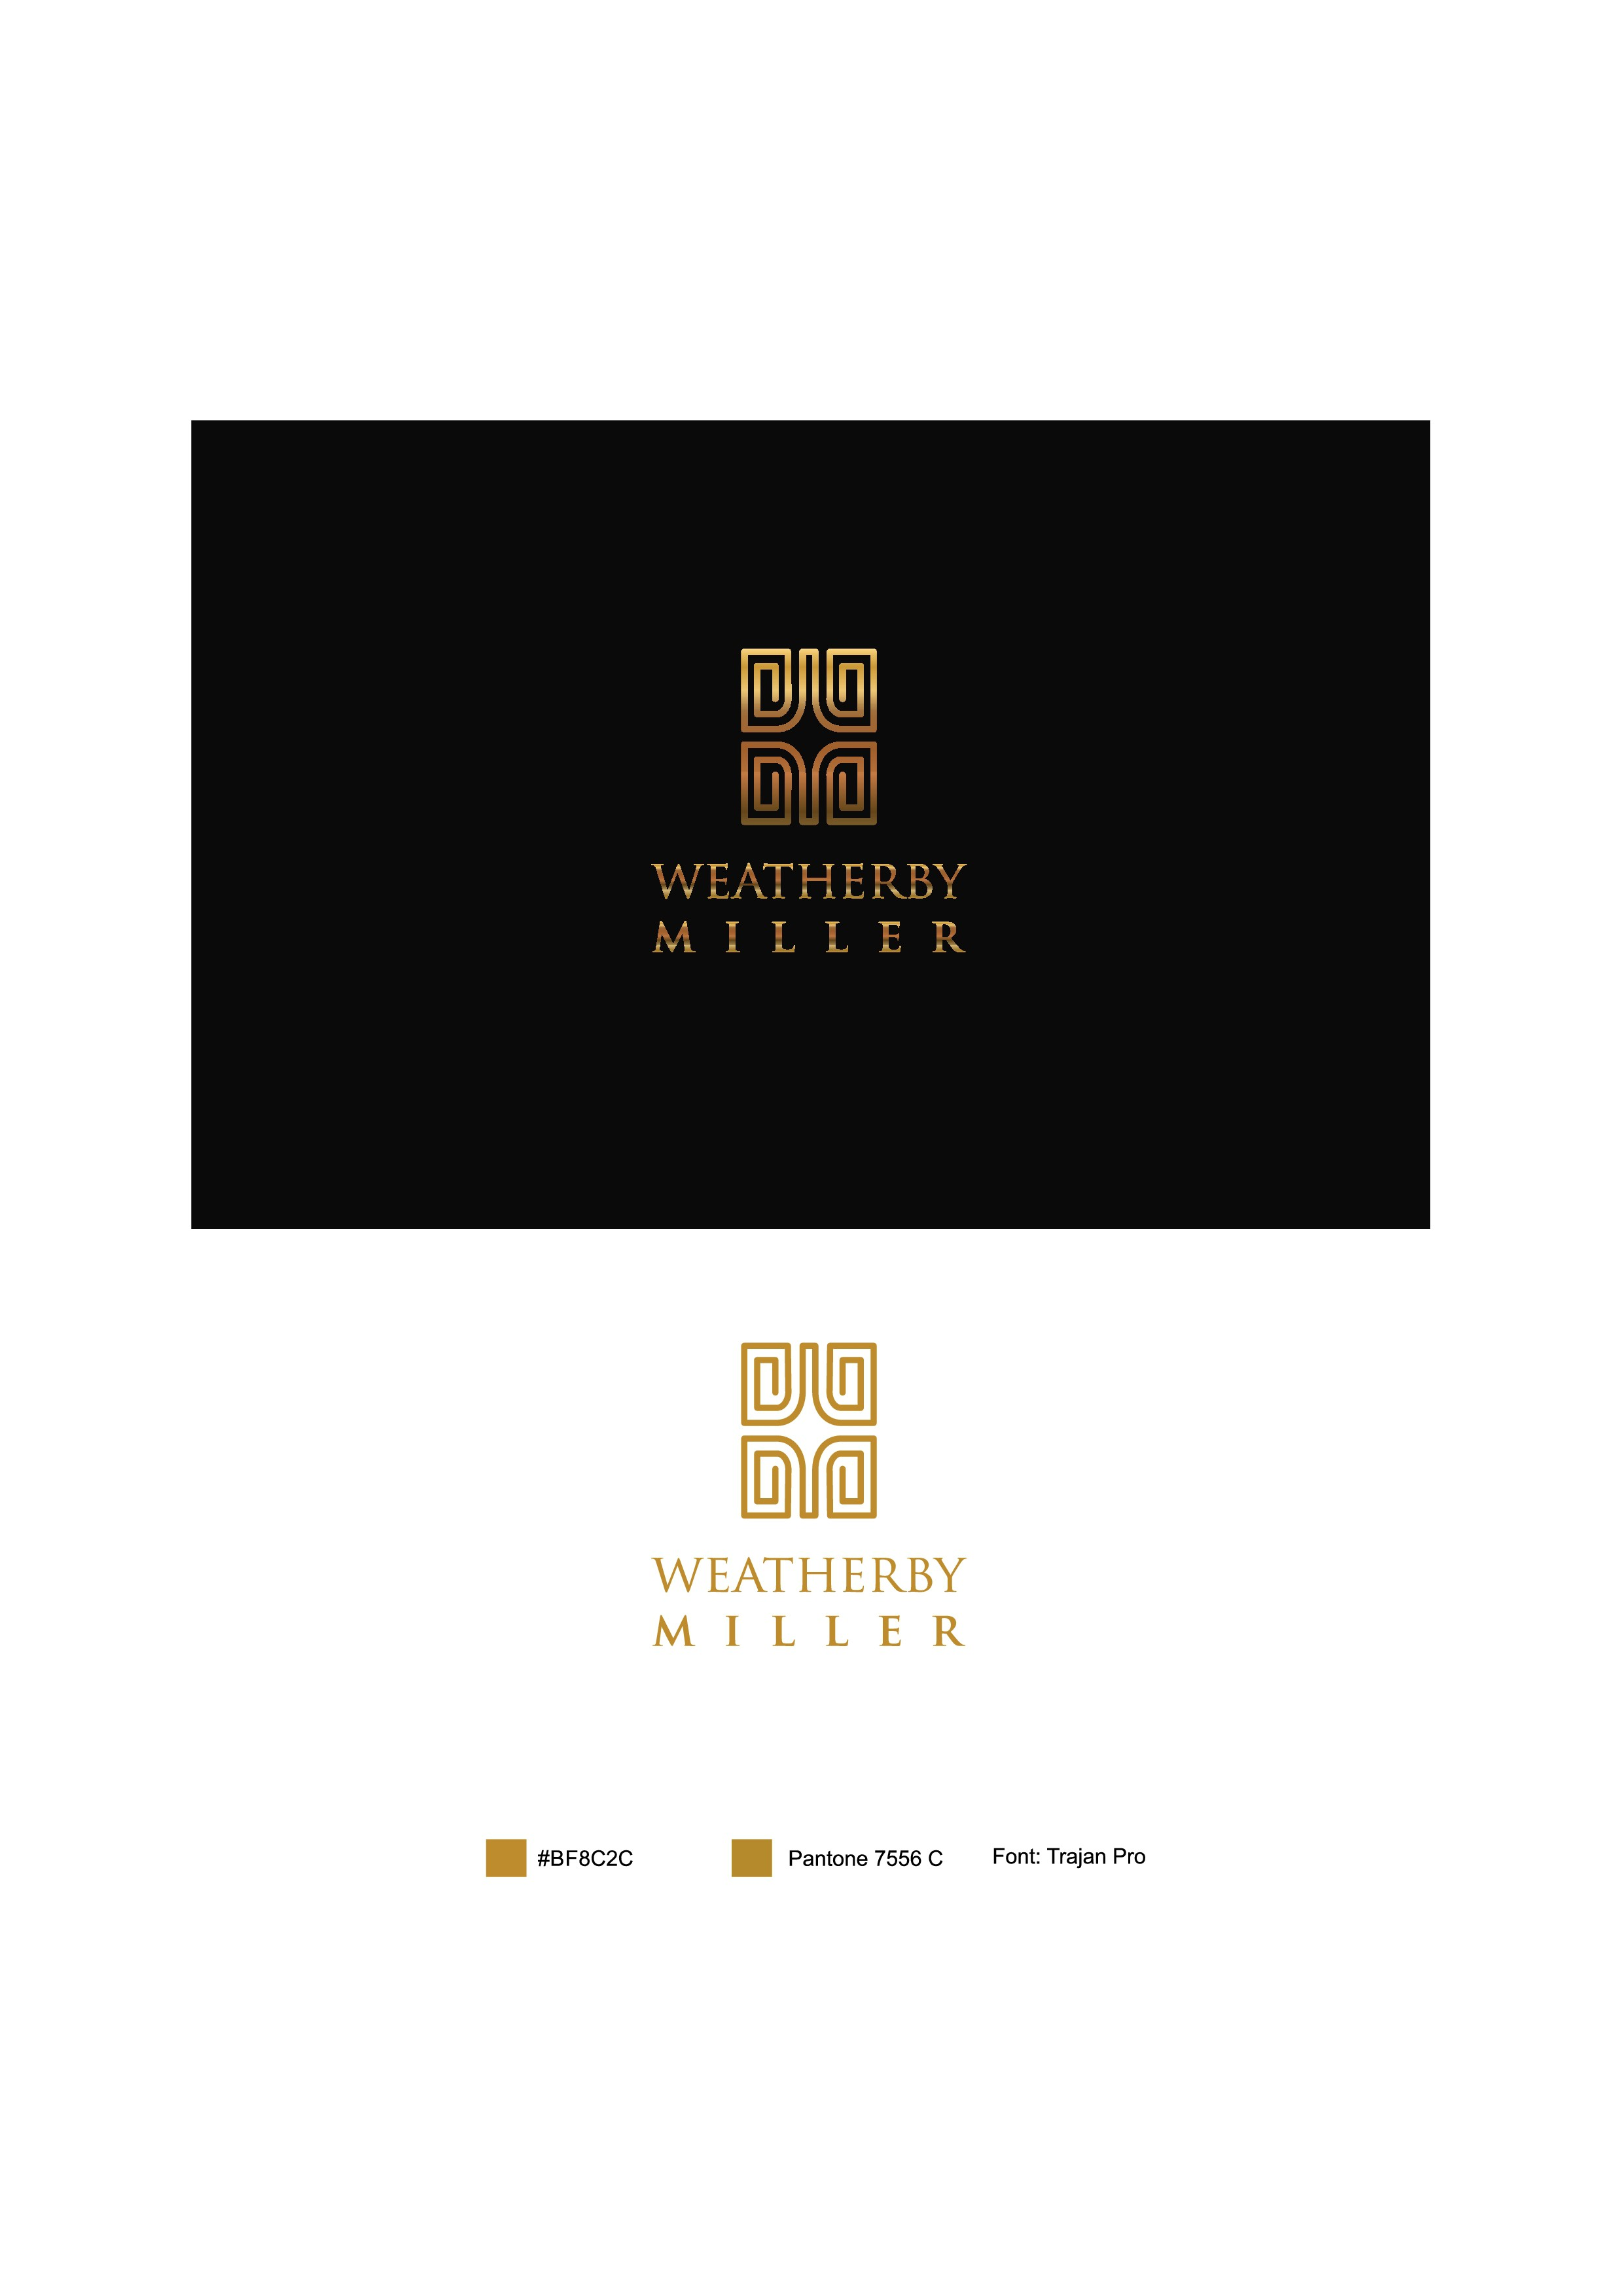 Create a sophisticated logo for runway fashion jewelry by Weatherby Miller